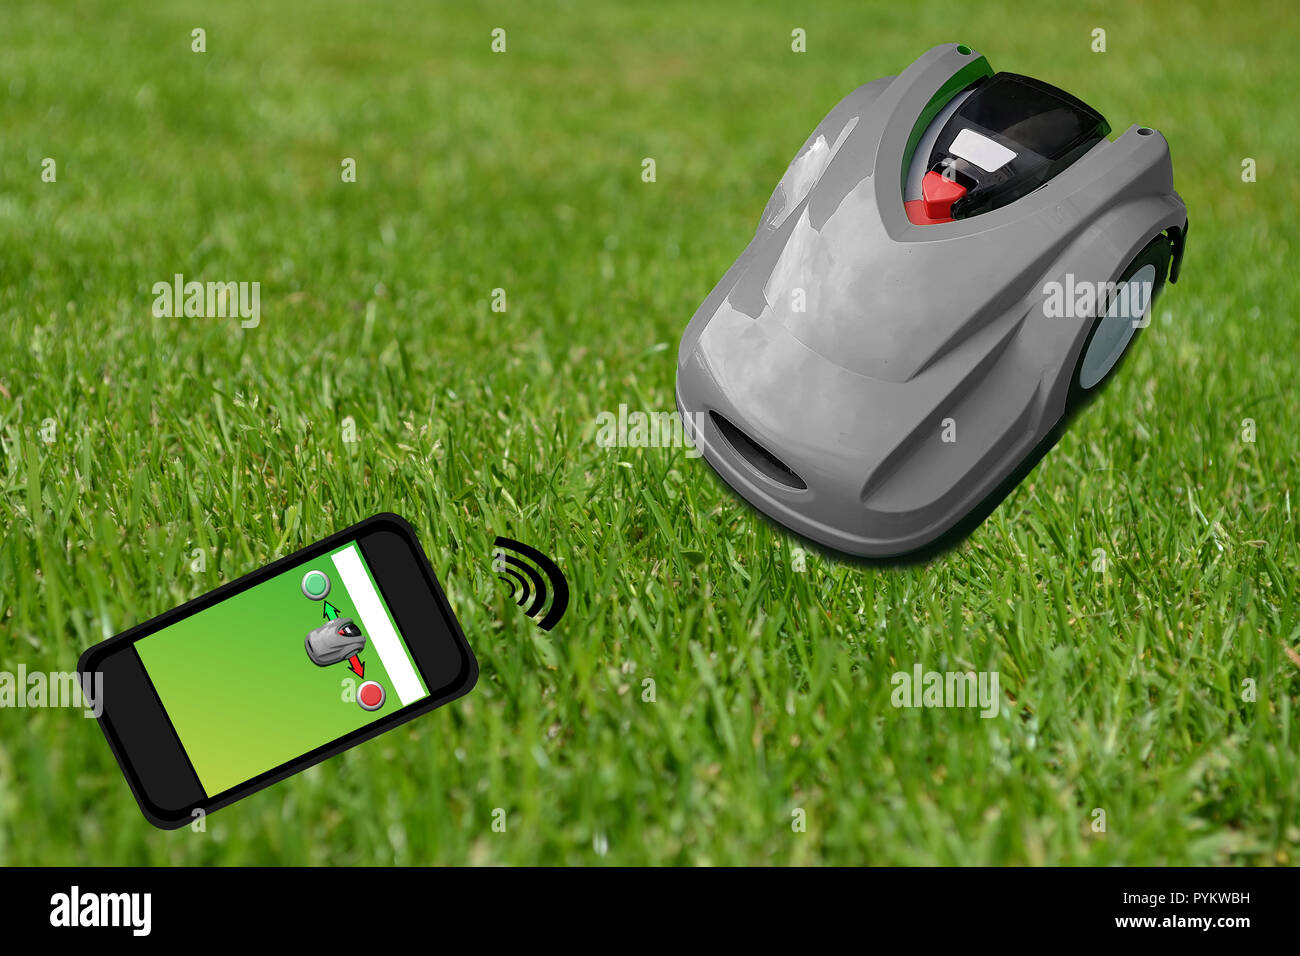 Robot lawn mower on a manicured green lawn. Control with the smartphone Stock Photo